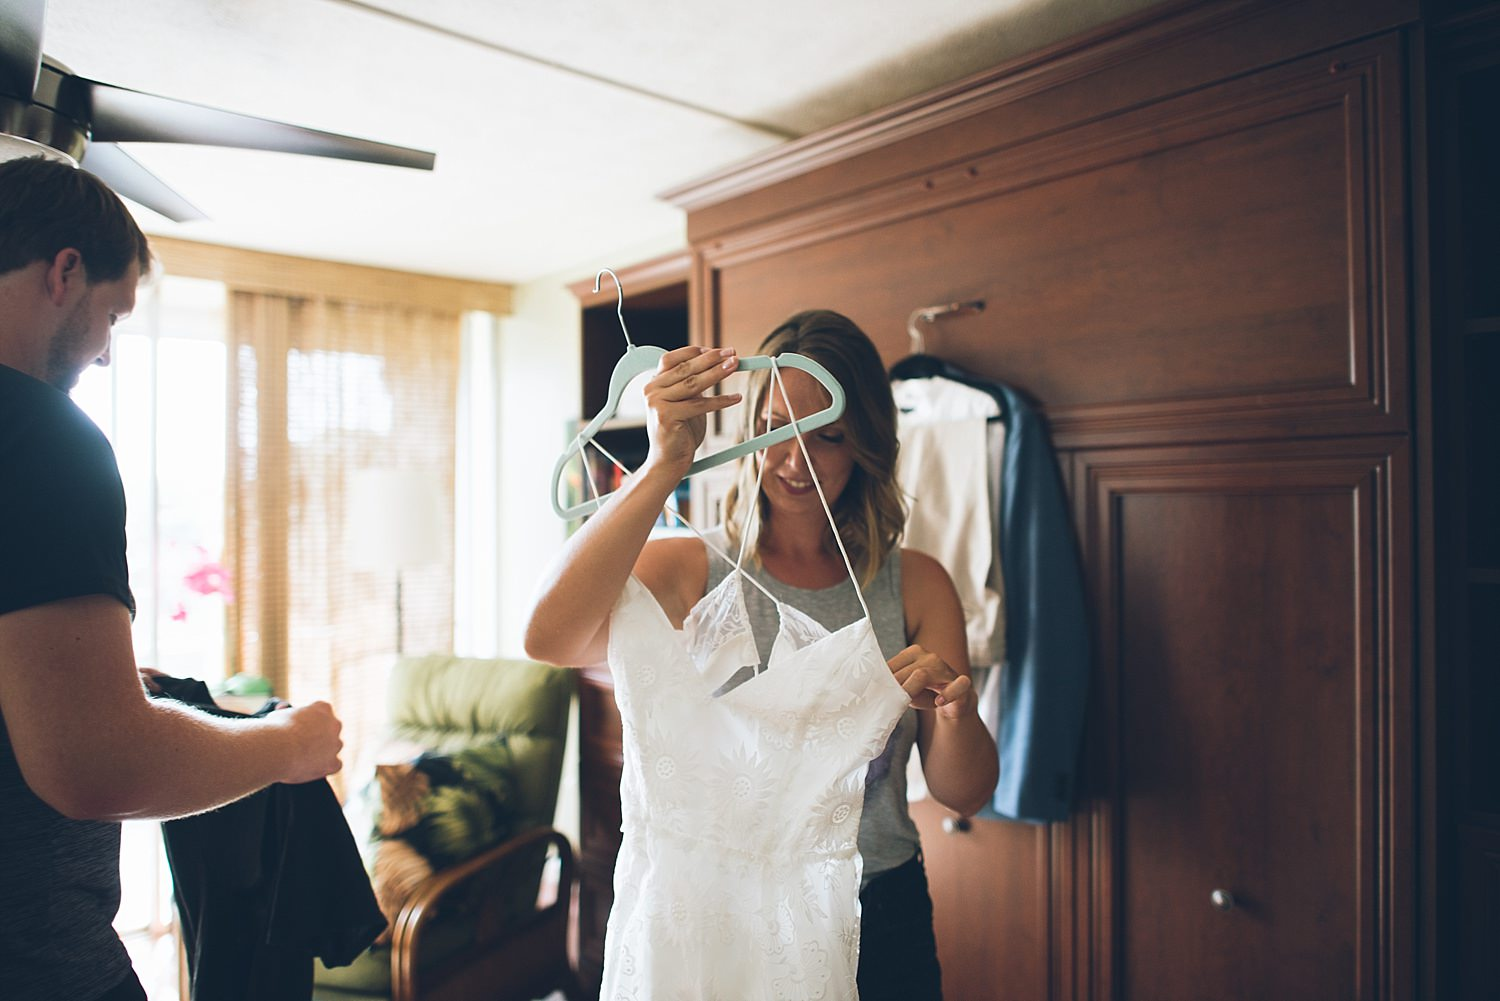 bride getting her wedding dress ready